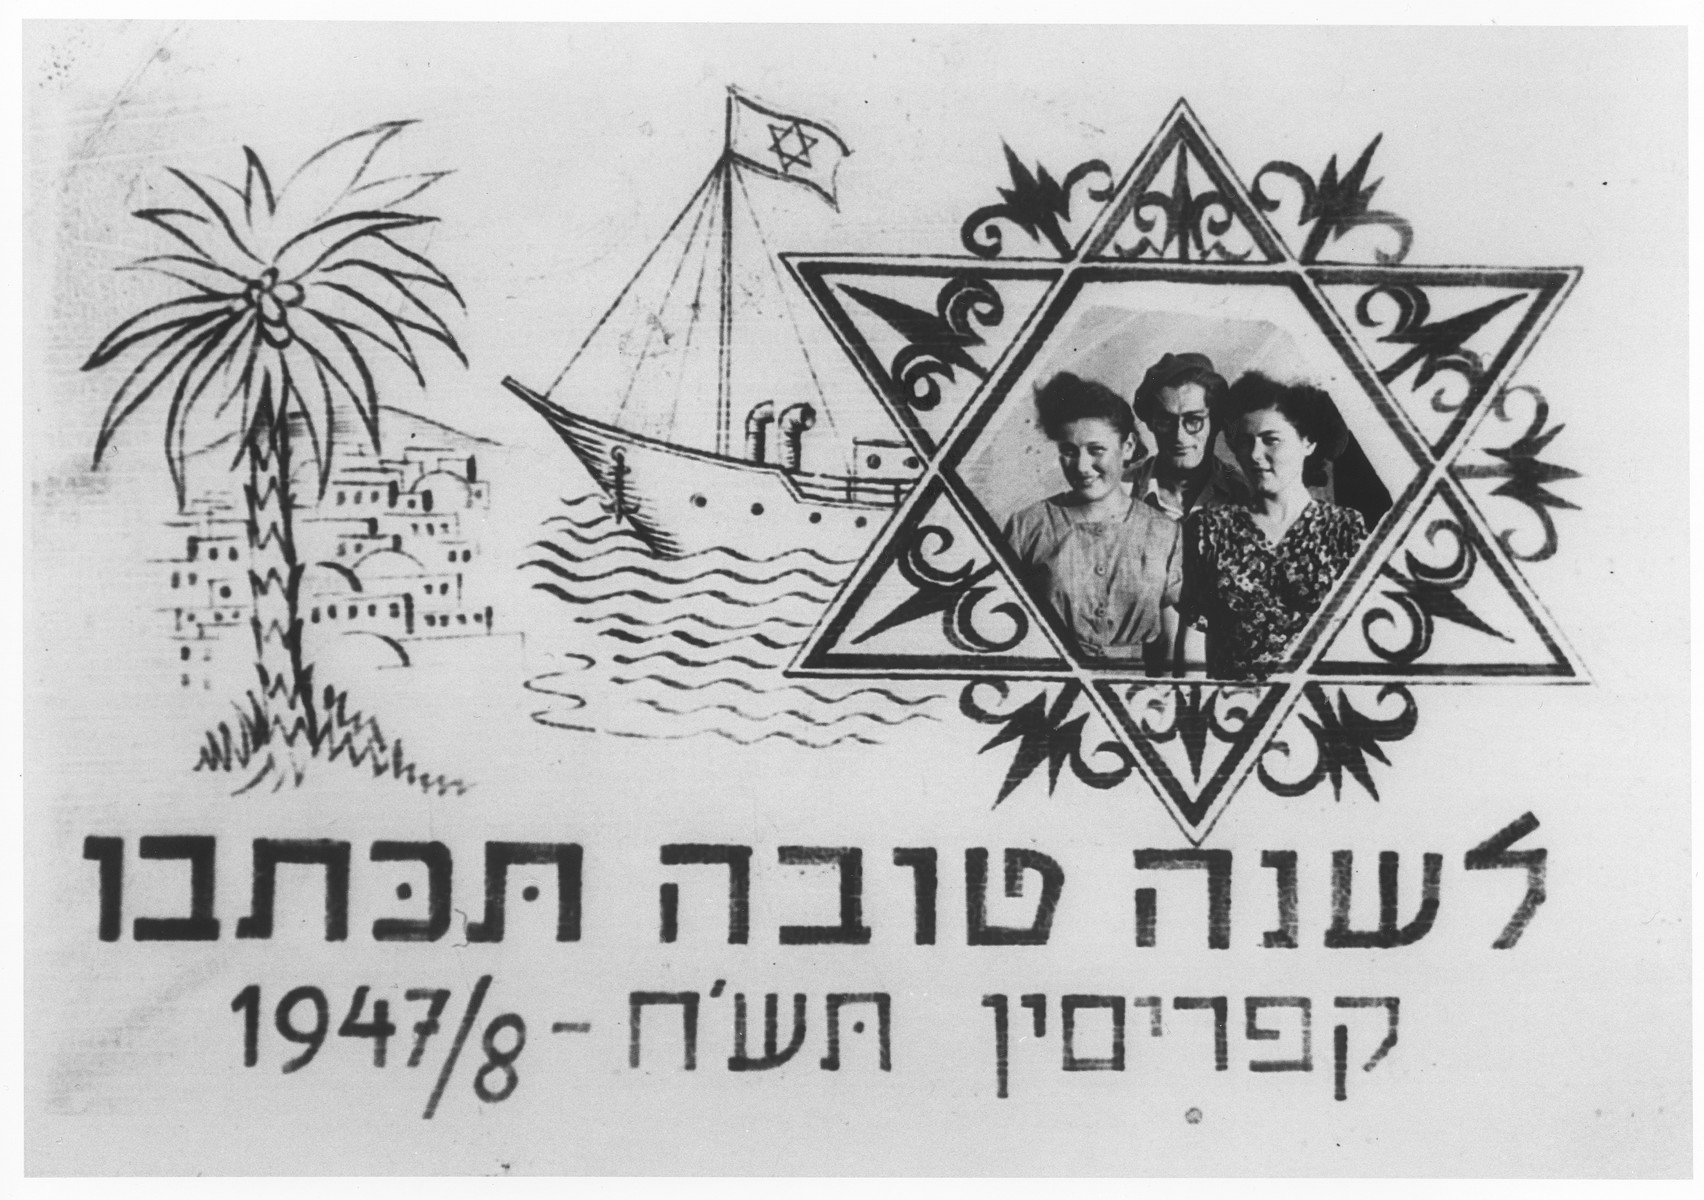 Personalized Jewish New Year's card that was sent from the Cyprus detention camp.  The greeting card bears the photograph of  Pnina, Meir and Leah Halpern (pictured left to right), Jewish DPs from the illegal immigration ship, Theodor Herzl, who were interned on Cyprus.